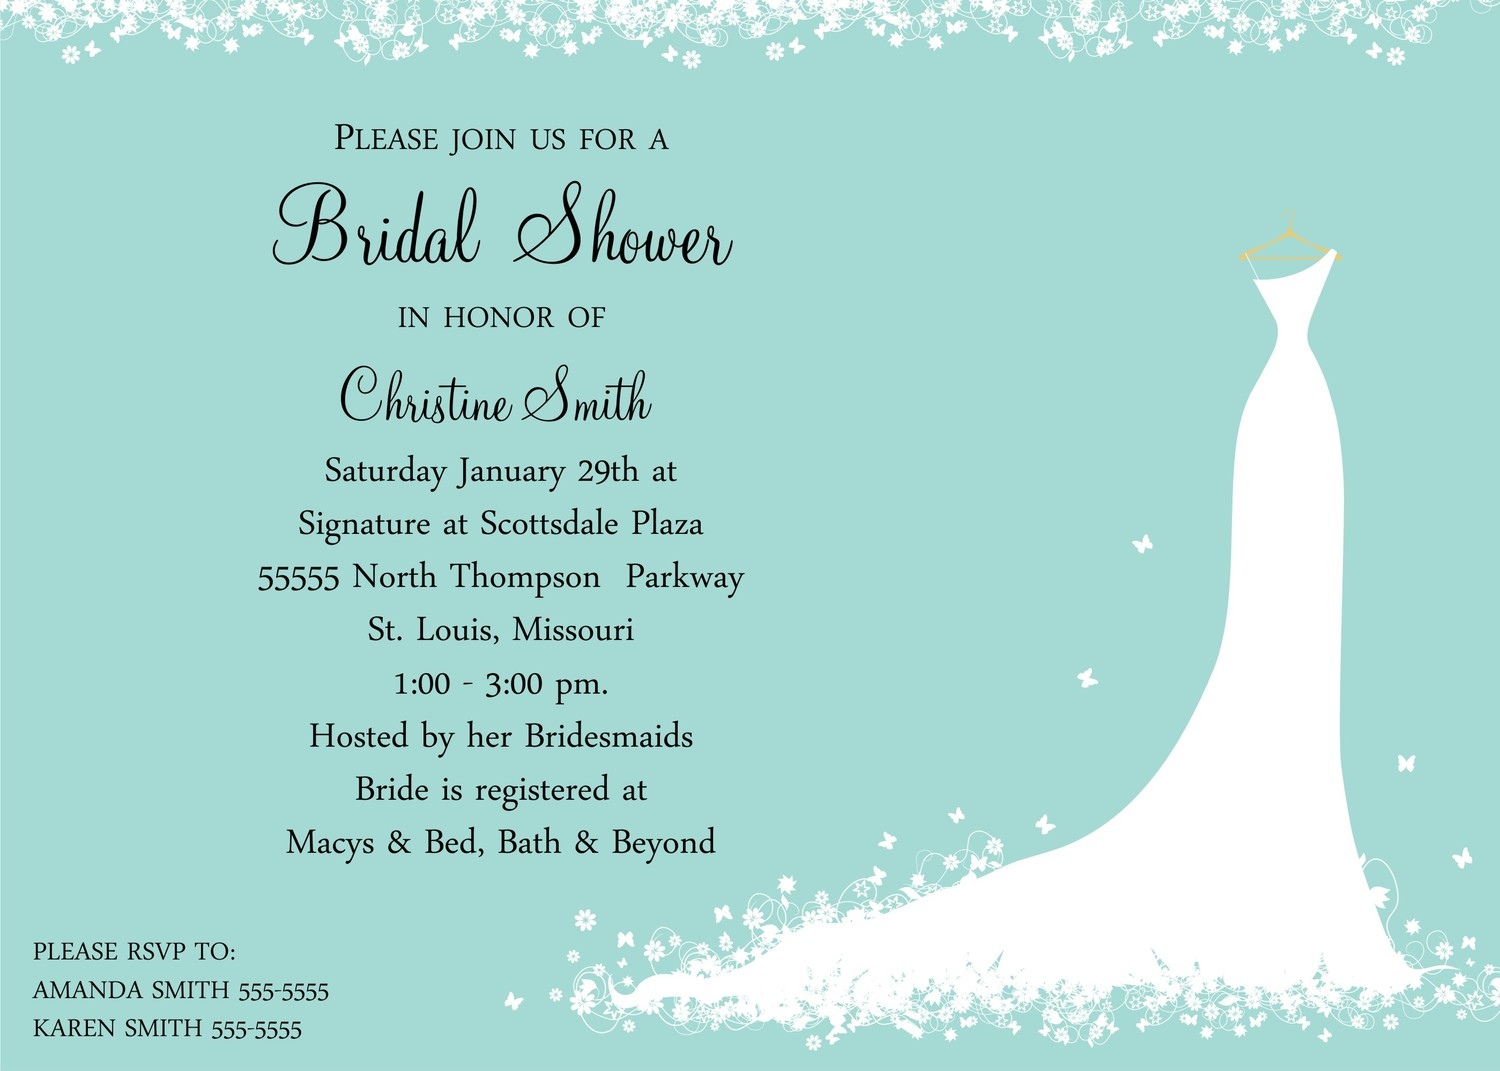 wedding shower invitation wording 15 bridal shower invitations ideas 1154